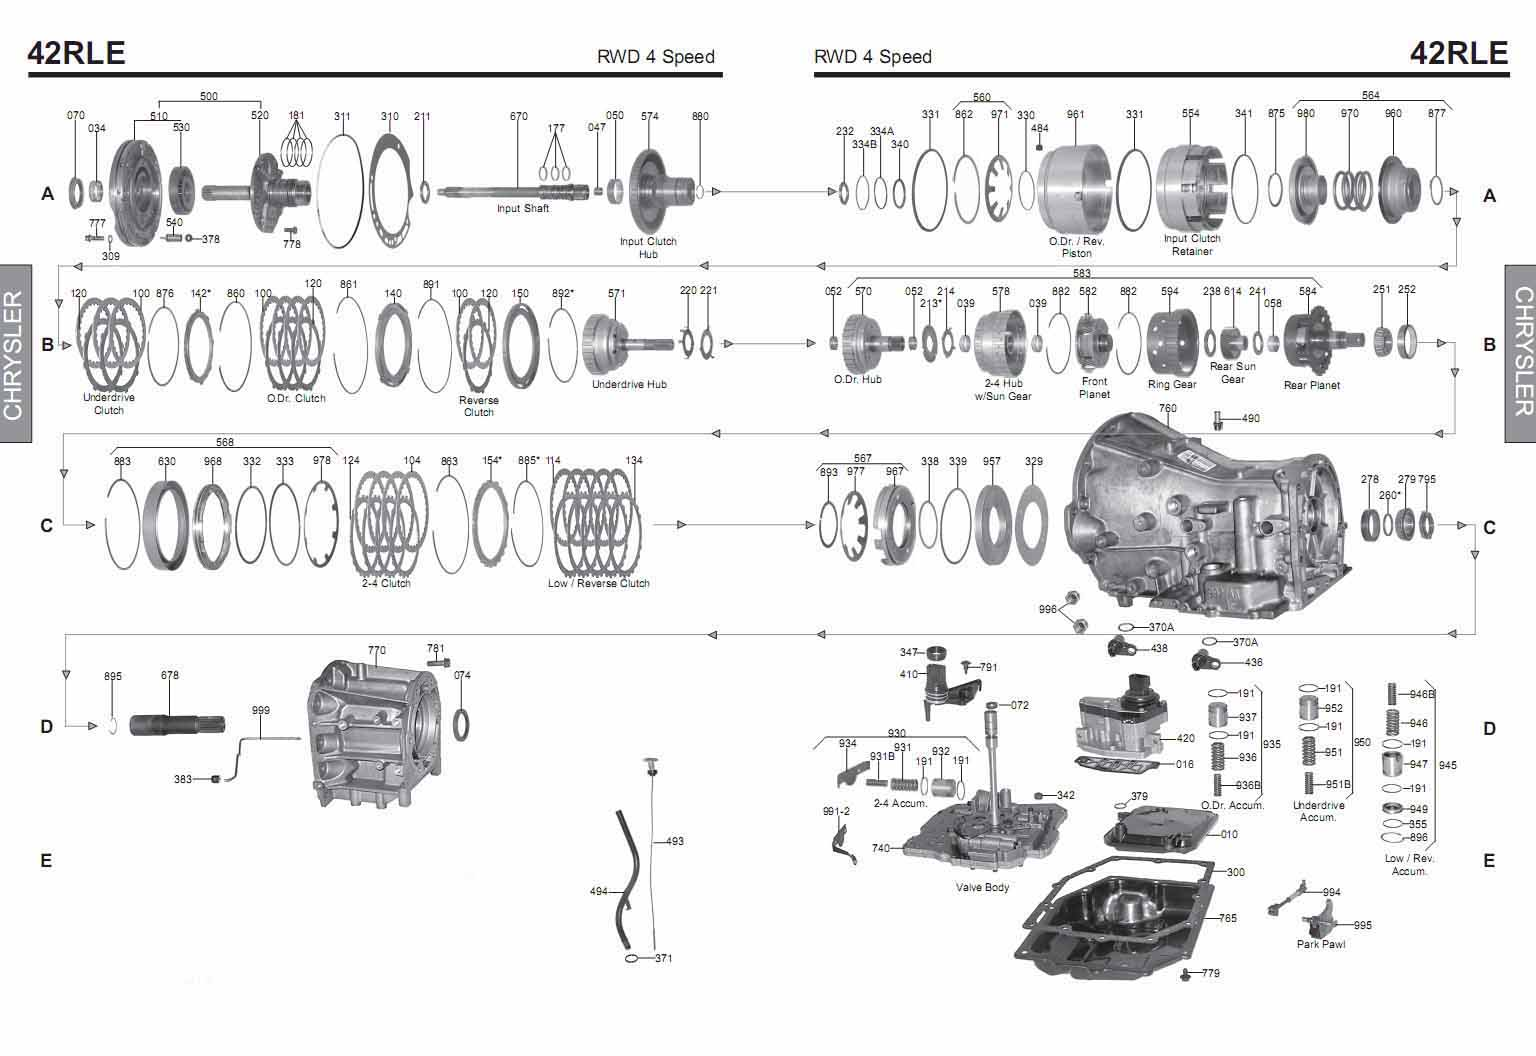 42le A606 42rle further E40d Neutral Safety Switch Wiring Diagram in addition Discussion T34143 ds665111 besides 948726 Probleme Mecanique Ford Focus as well Ford Transmission Illustrations. on ford automatic transmission problems